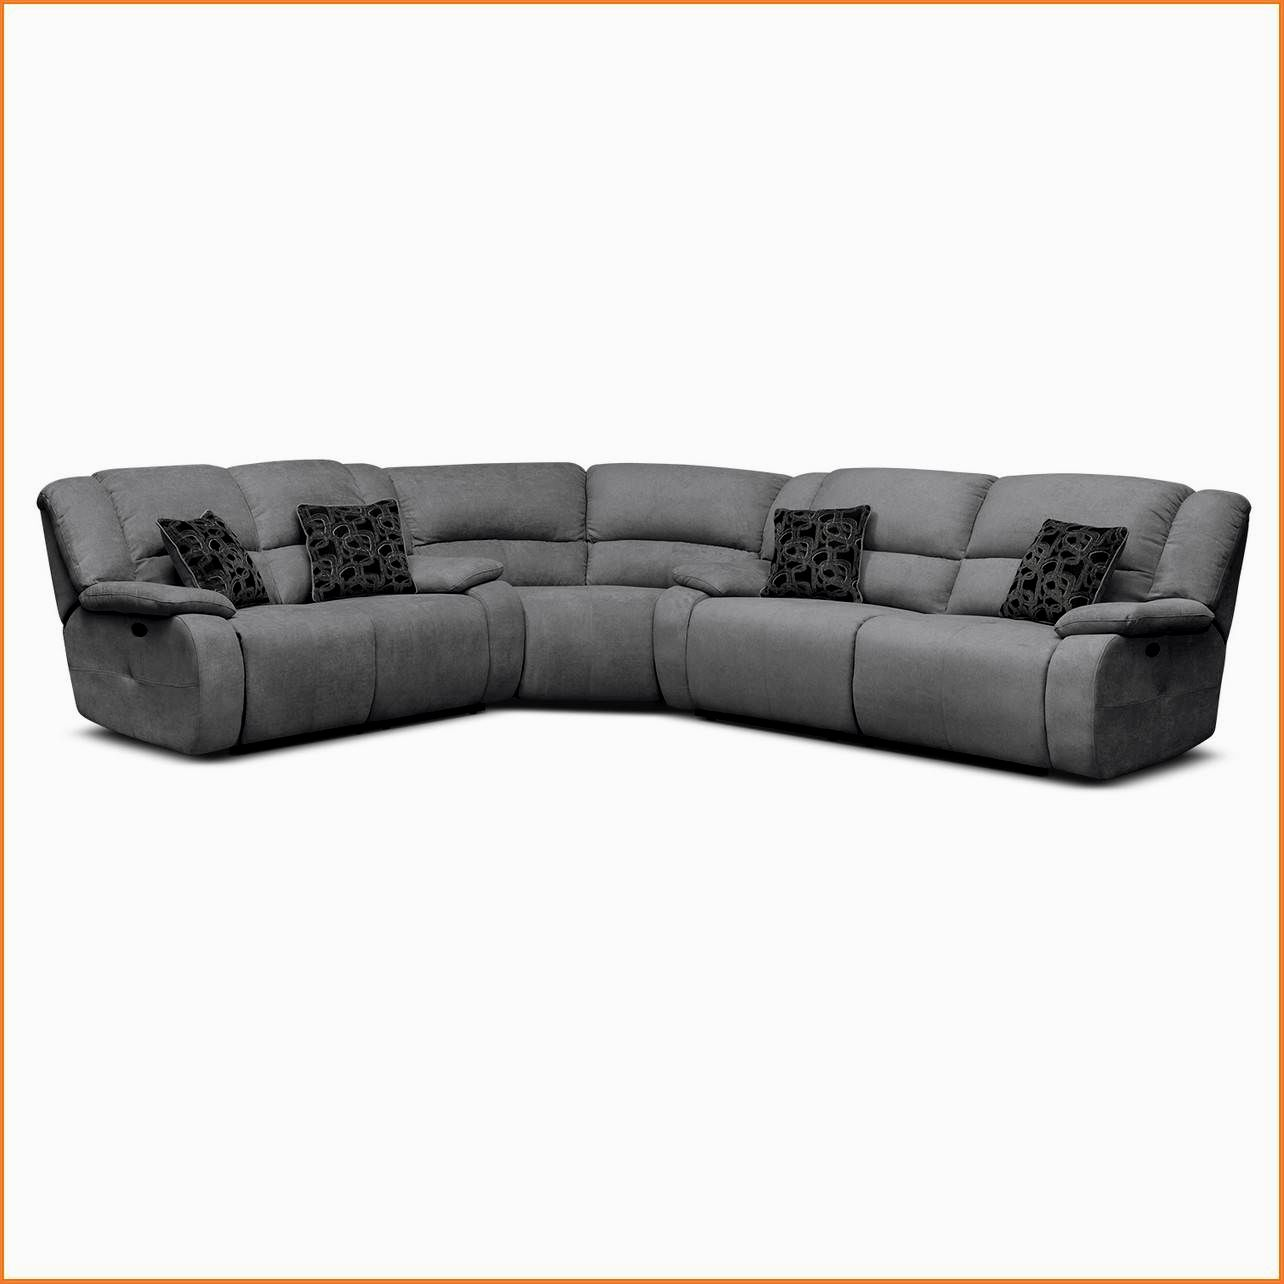 inspirational sectional reclining sofa picture-Cool Sectional Reclining sofa Construction